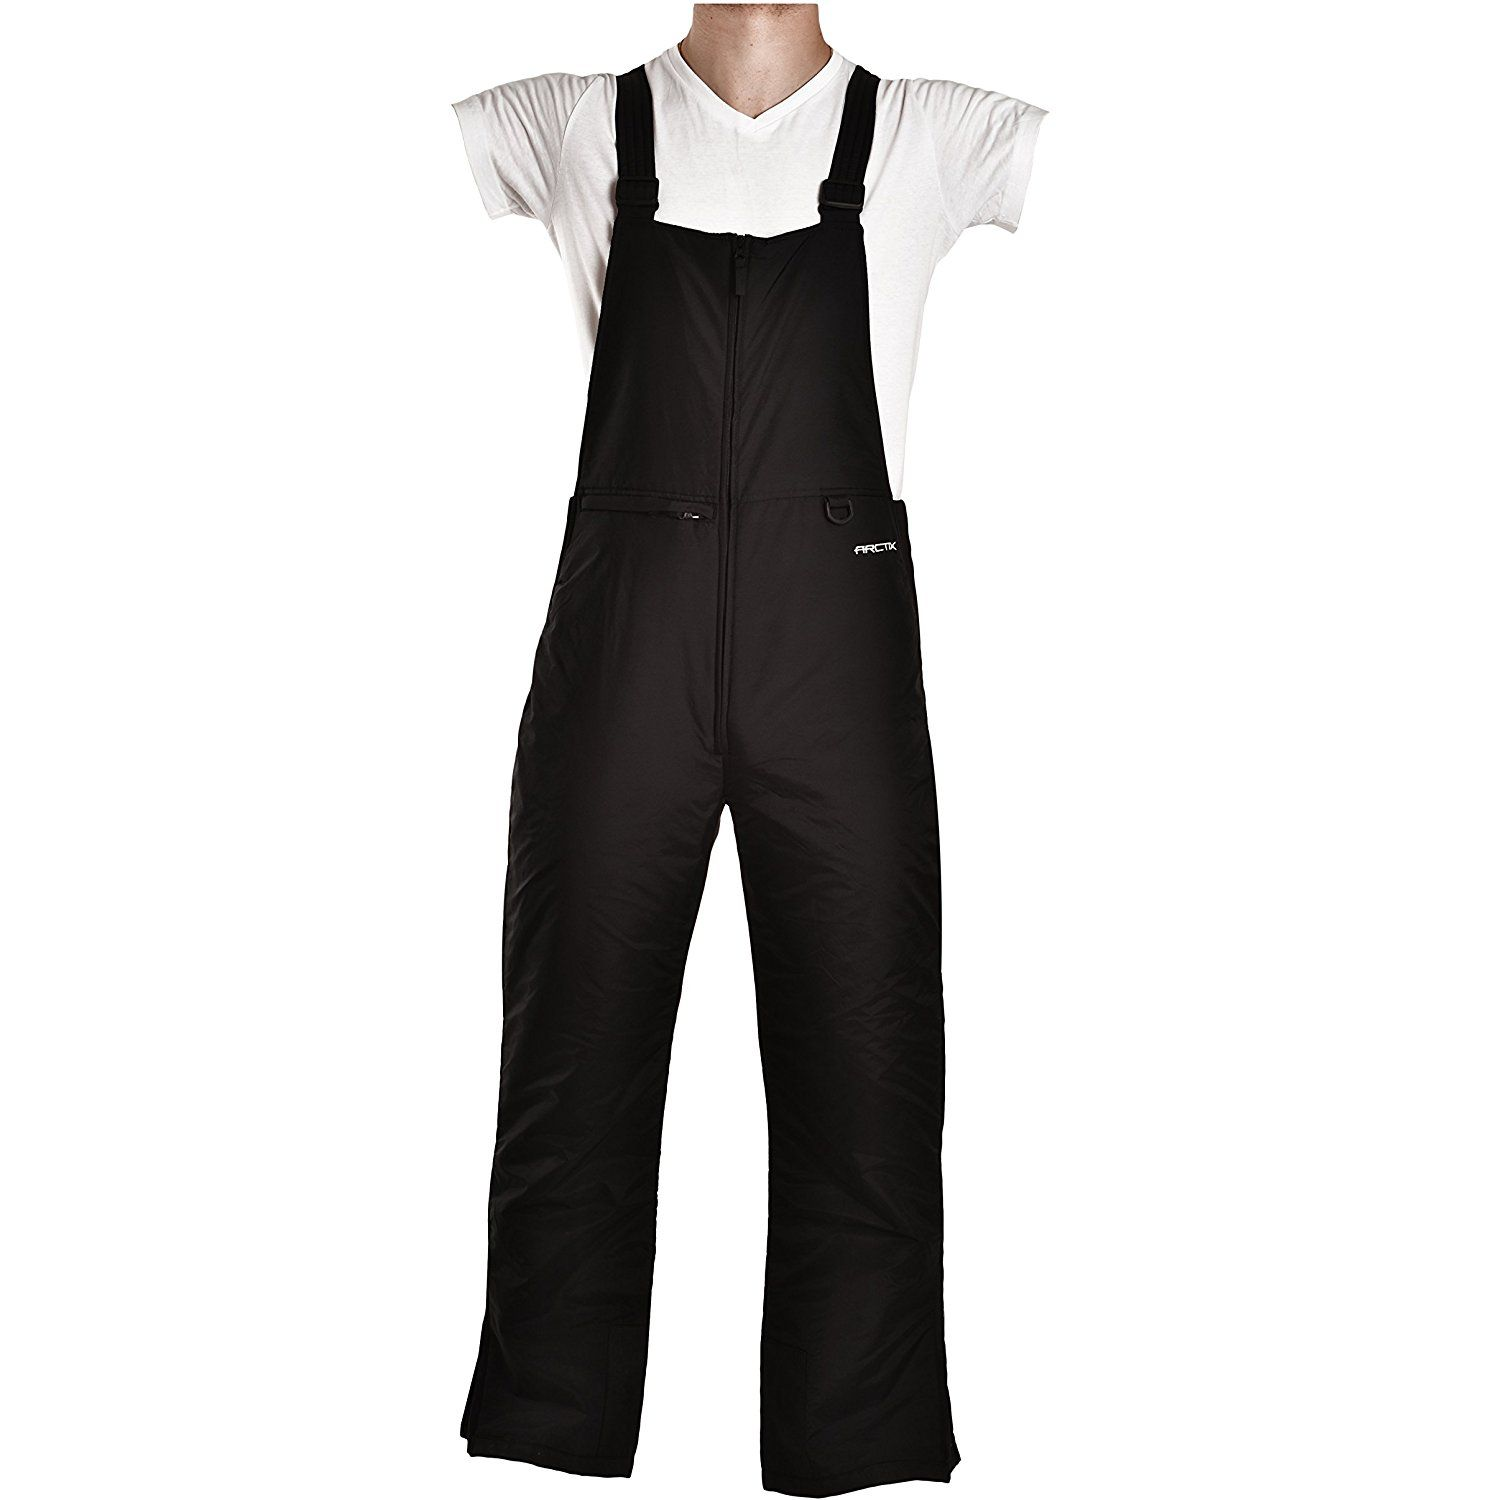 8c1f26ab556198 Arctix Men's Essential Bib Overall >>> Details can be found by clicking on  the image. (This is an affiliate link) #SportsOutdoors